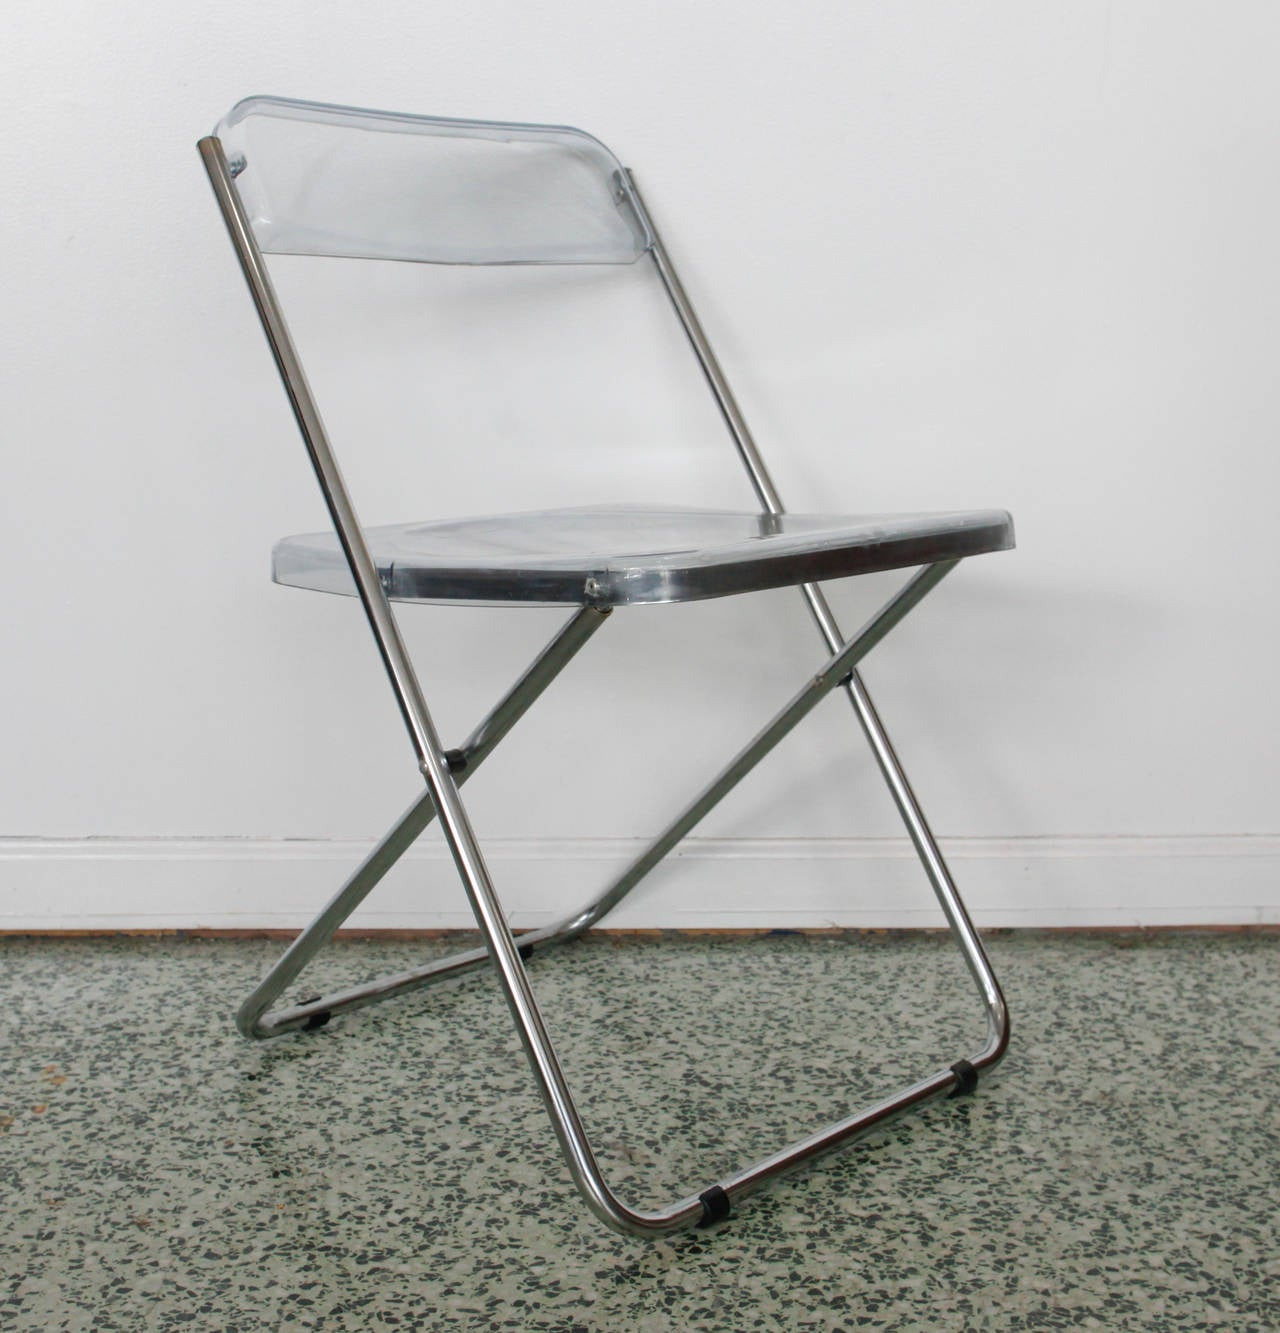 Six Folding Vintage Transparent Lucite Chrome Italian Chairs by Cattaneo at 1